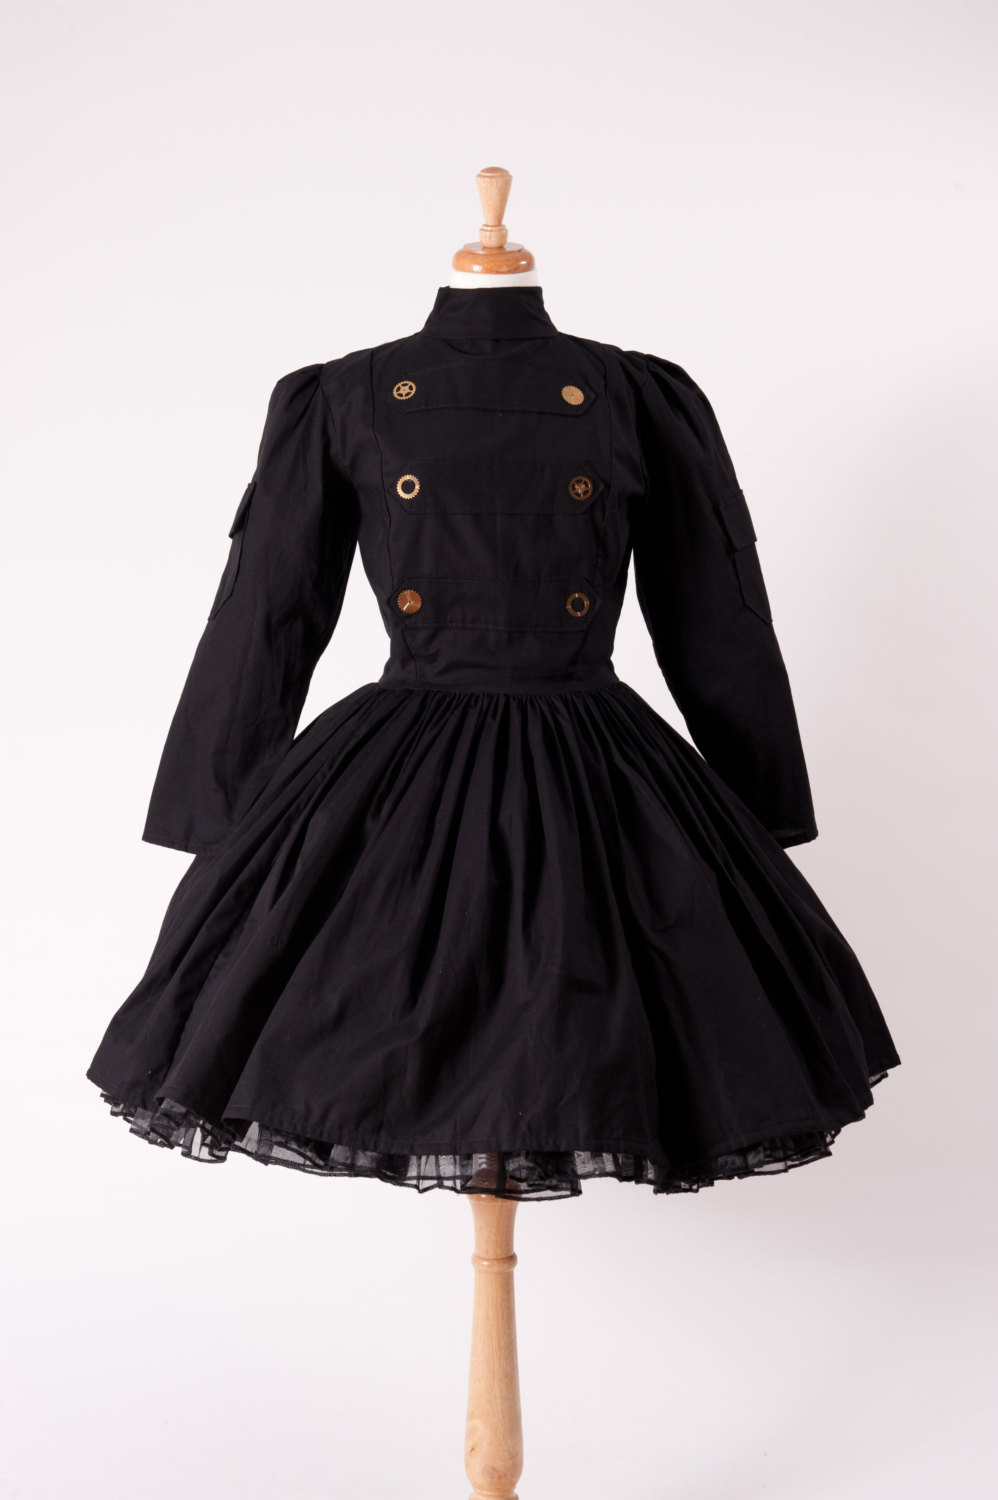 Steampunk Dress Military Lolita Gothic Dress Black Cotton Dress with Gears Custom Made to Measure Including Plus Size